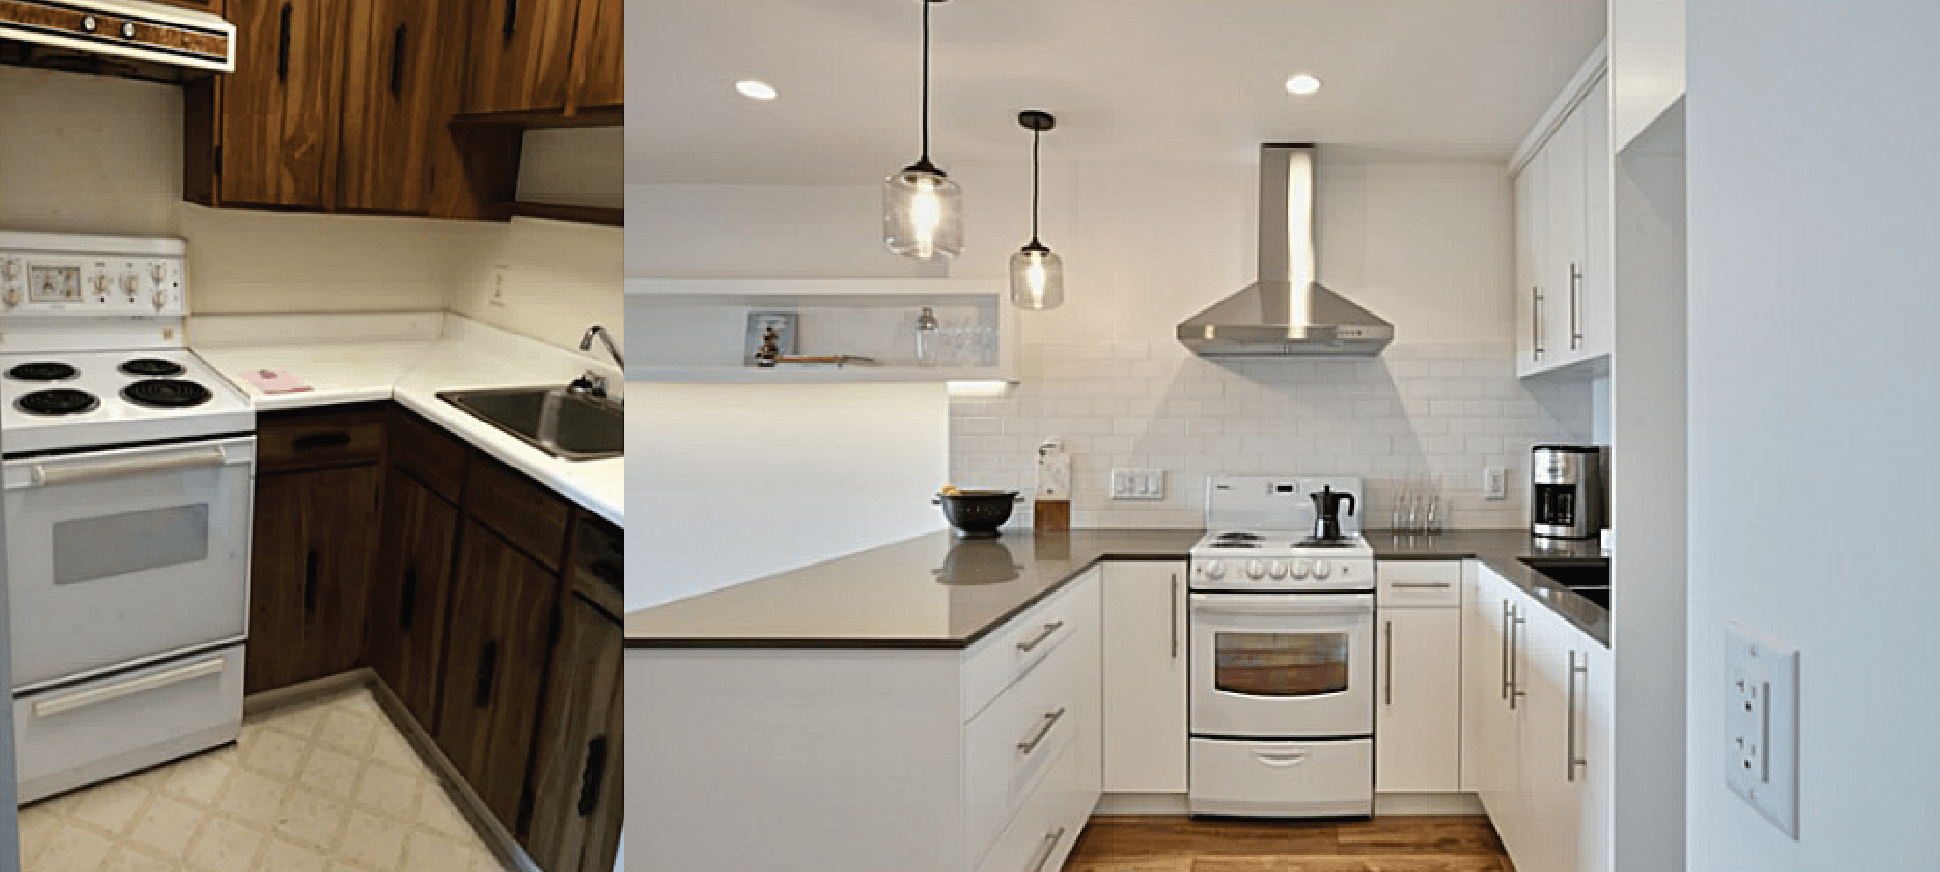 remodel small kitchen 48 sink base cabinet before and after for stunning